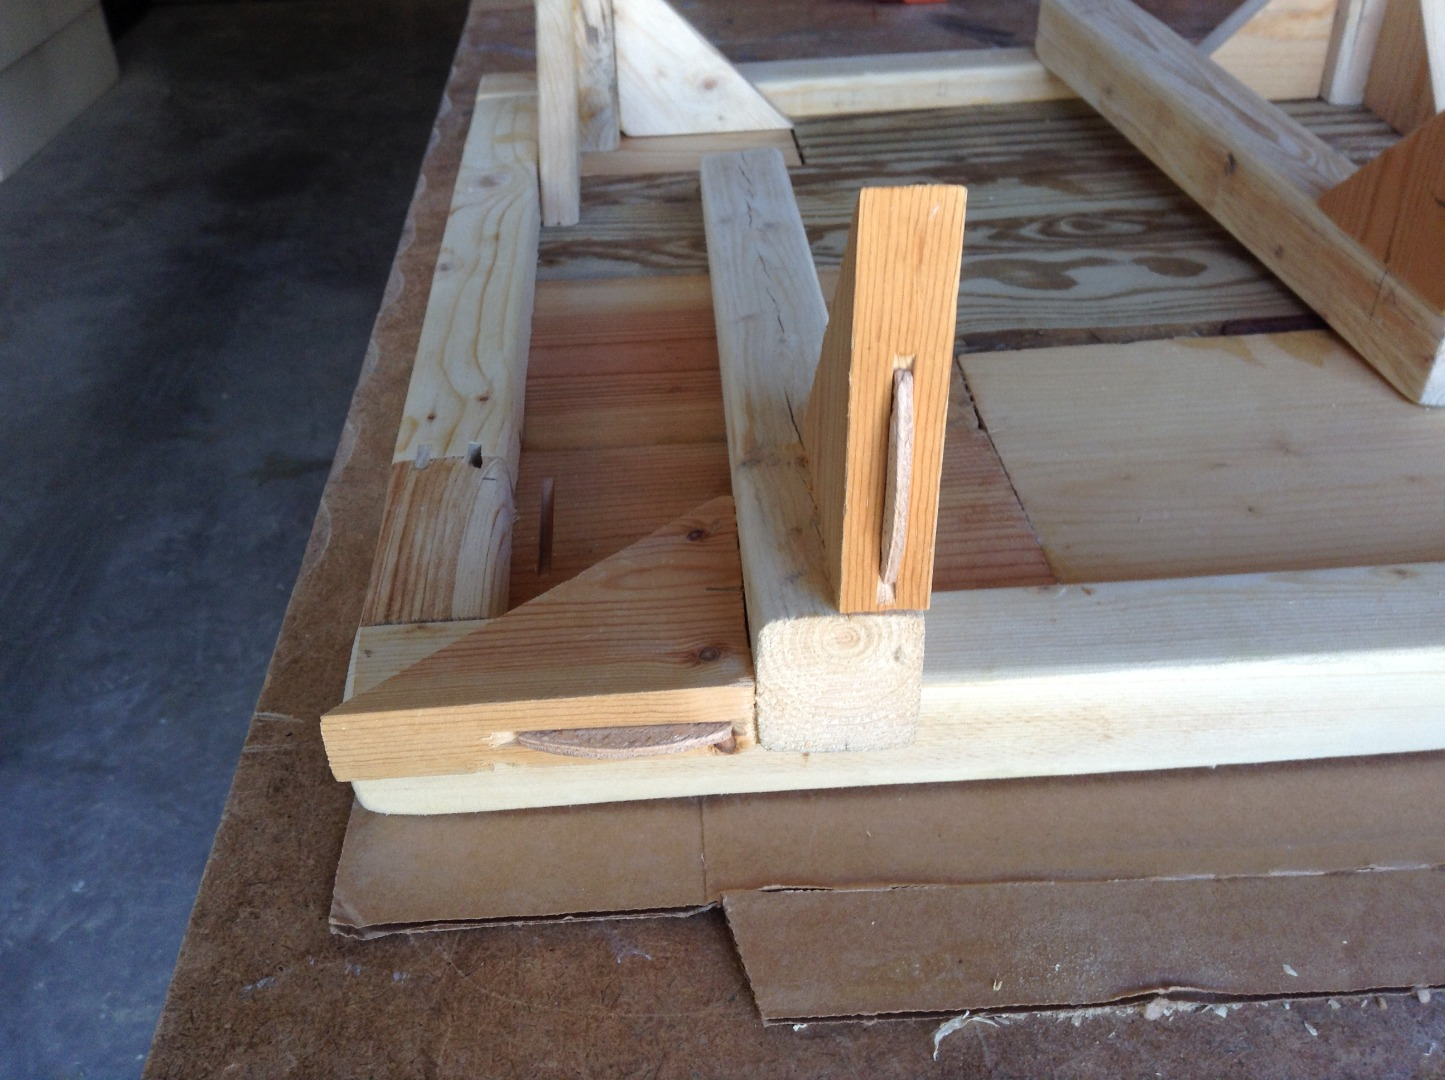 Picture of Assembly - Part Three - the Legs